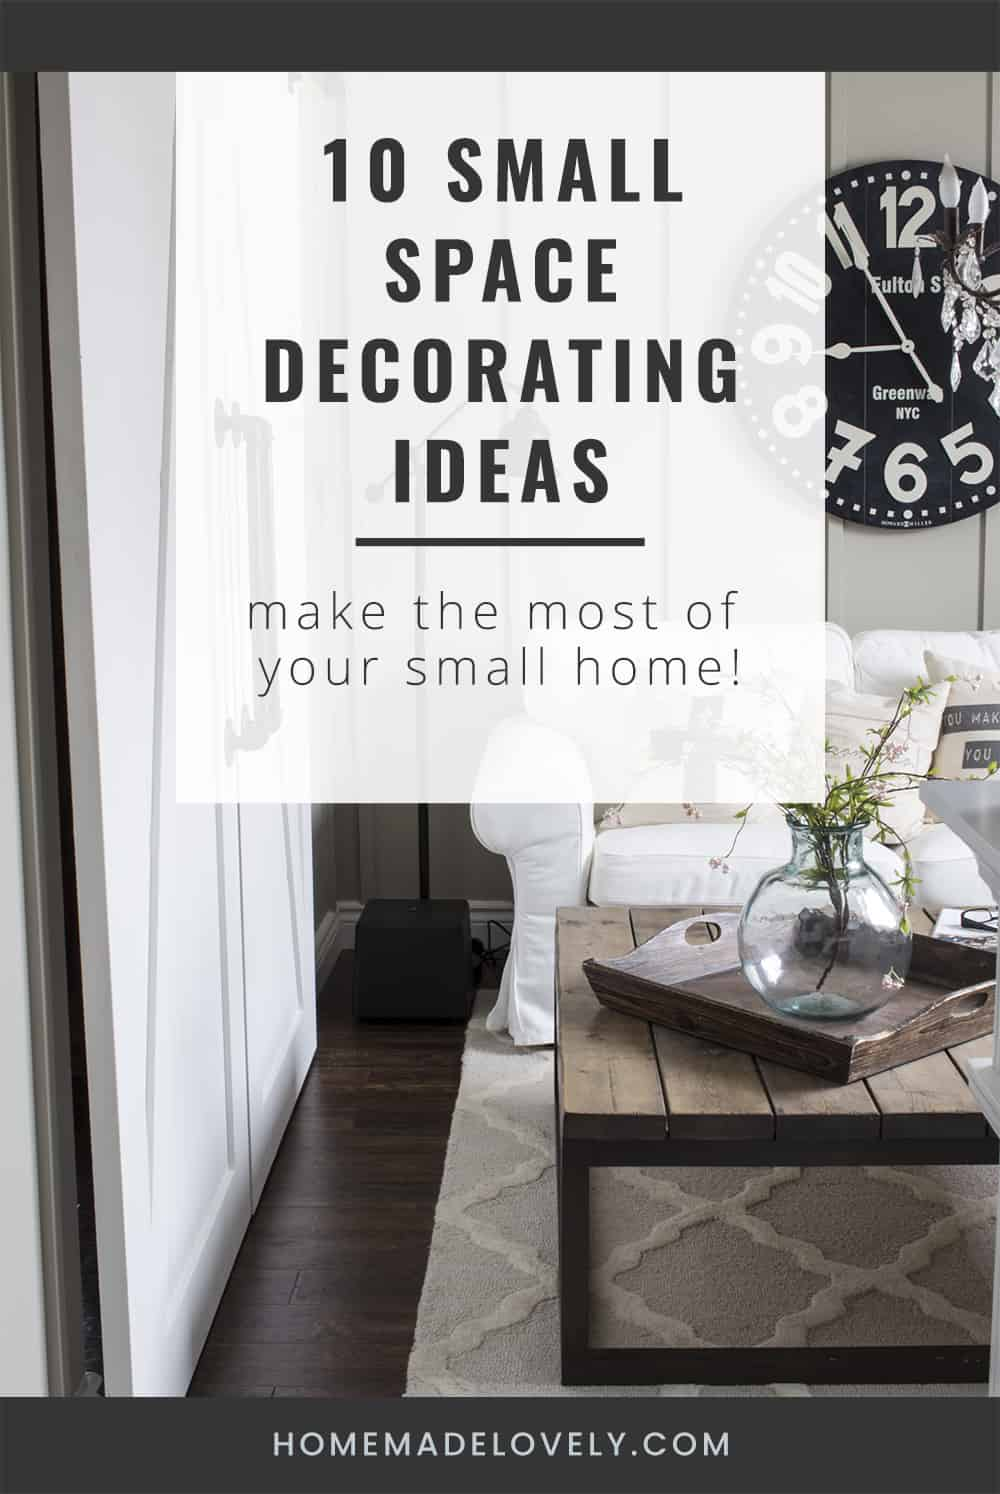 10 Small Space Decorating Ideas You Can Steal For Your Home